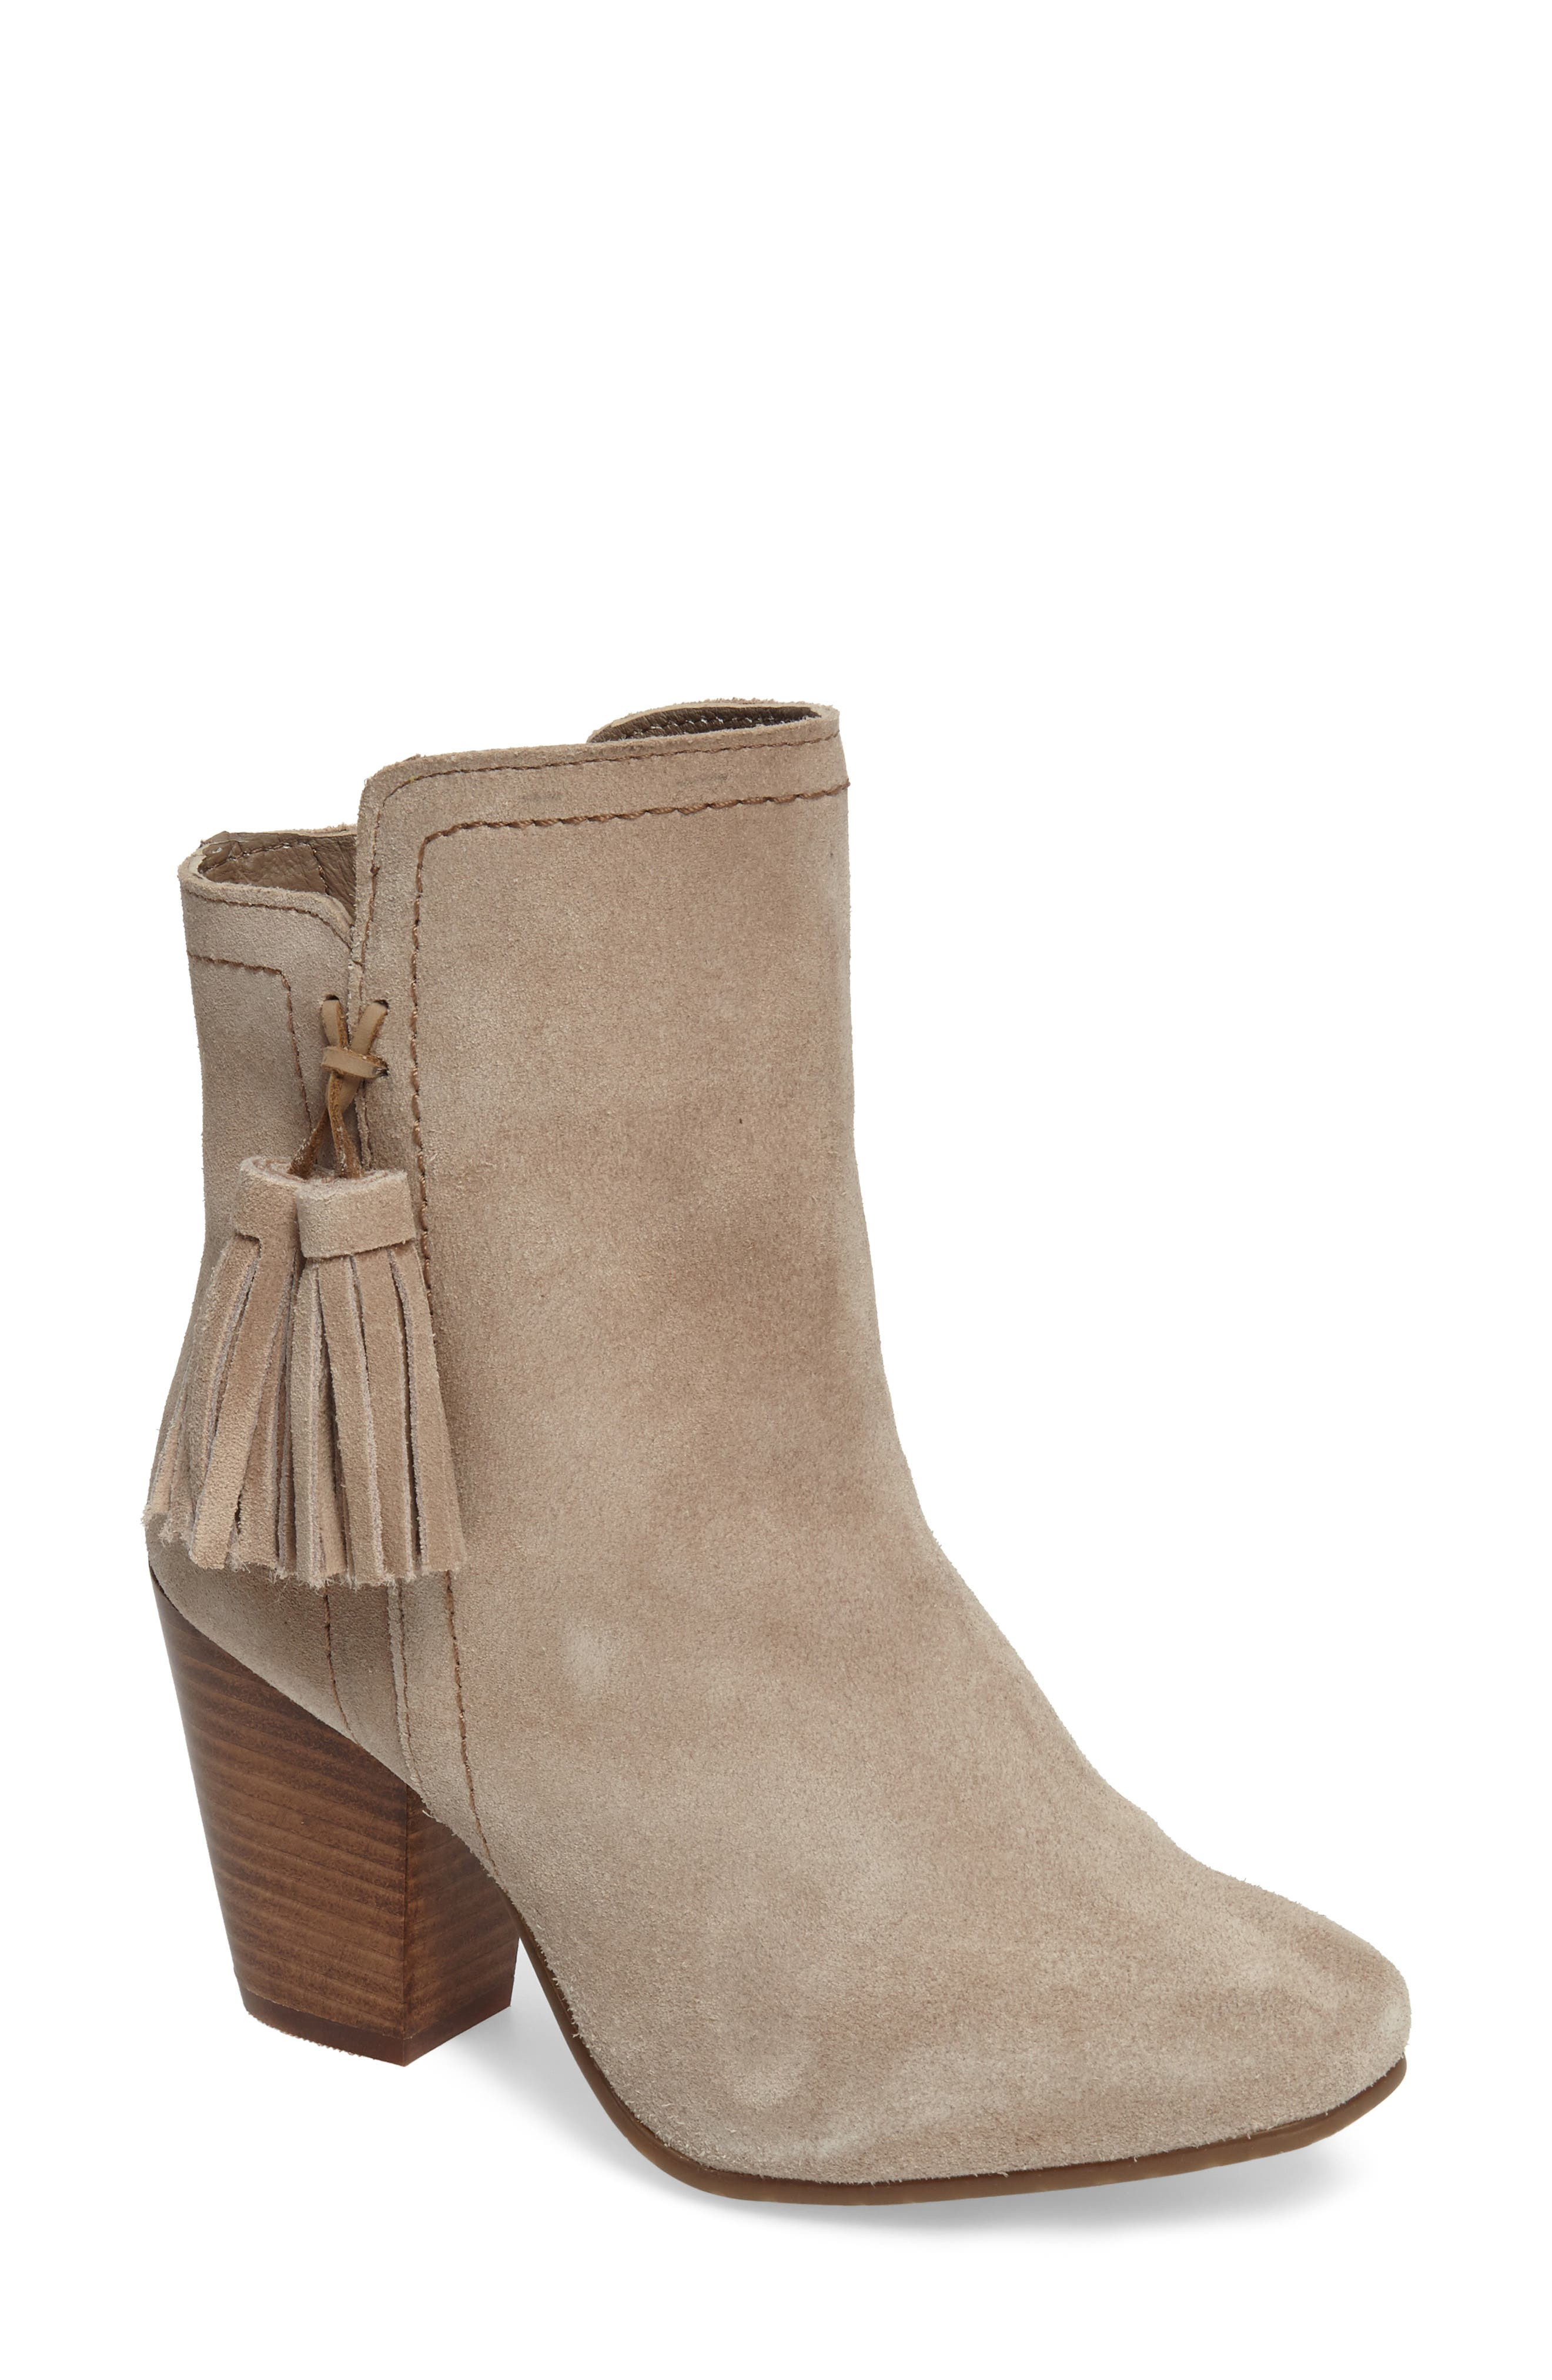 Daisee Billie Bootie,                         Main,                         color, 252